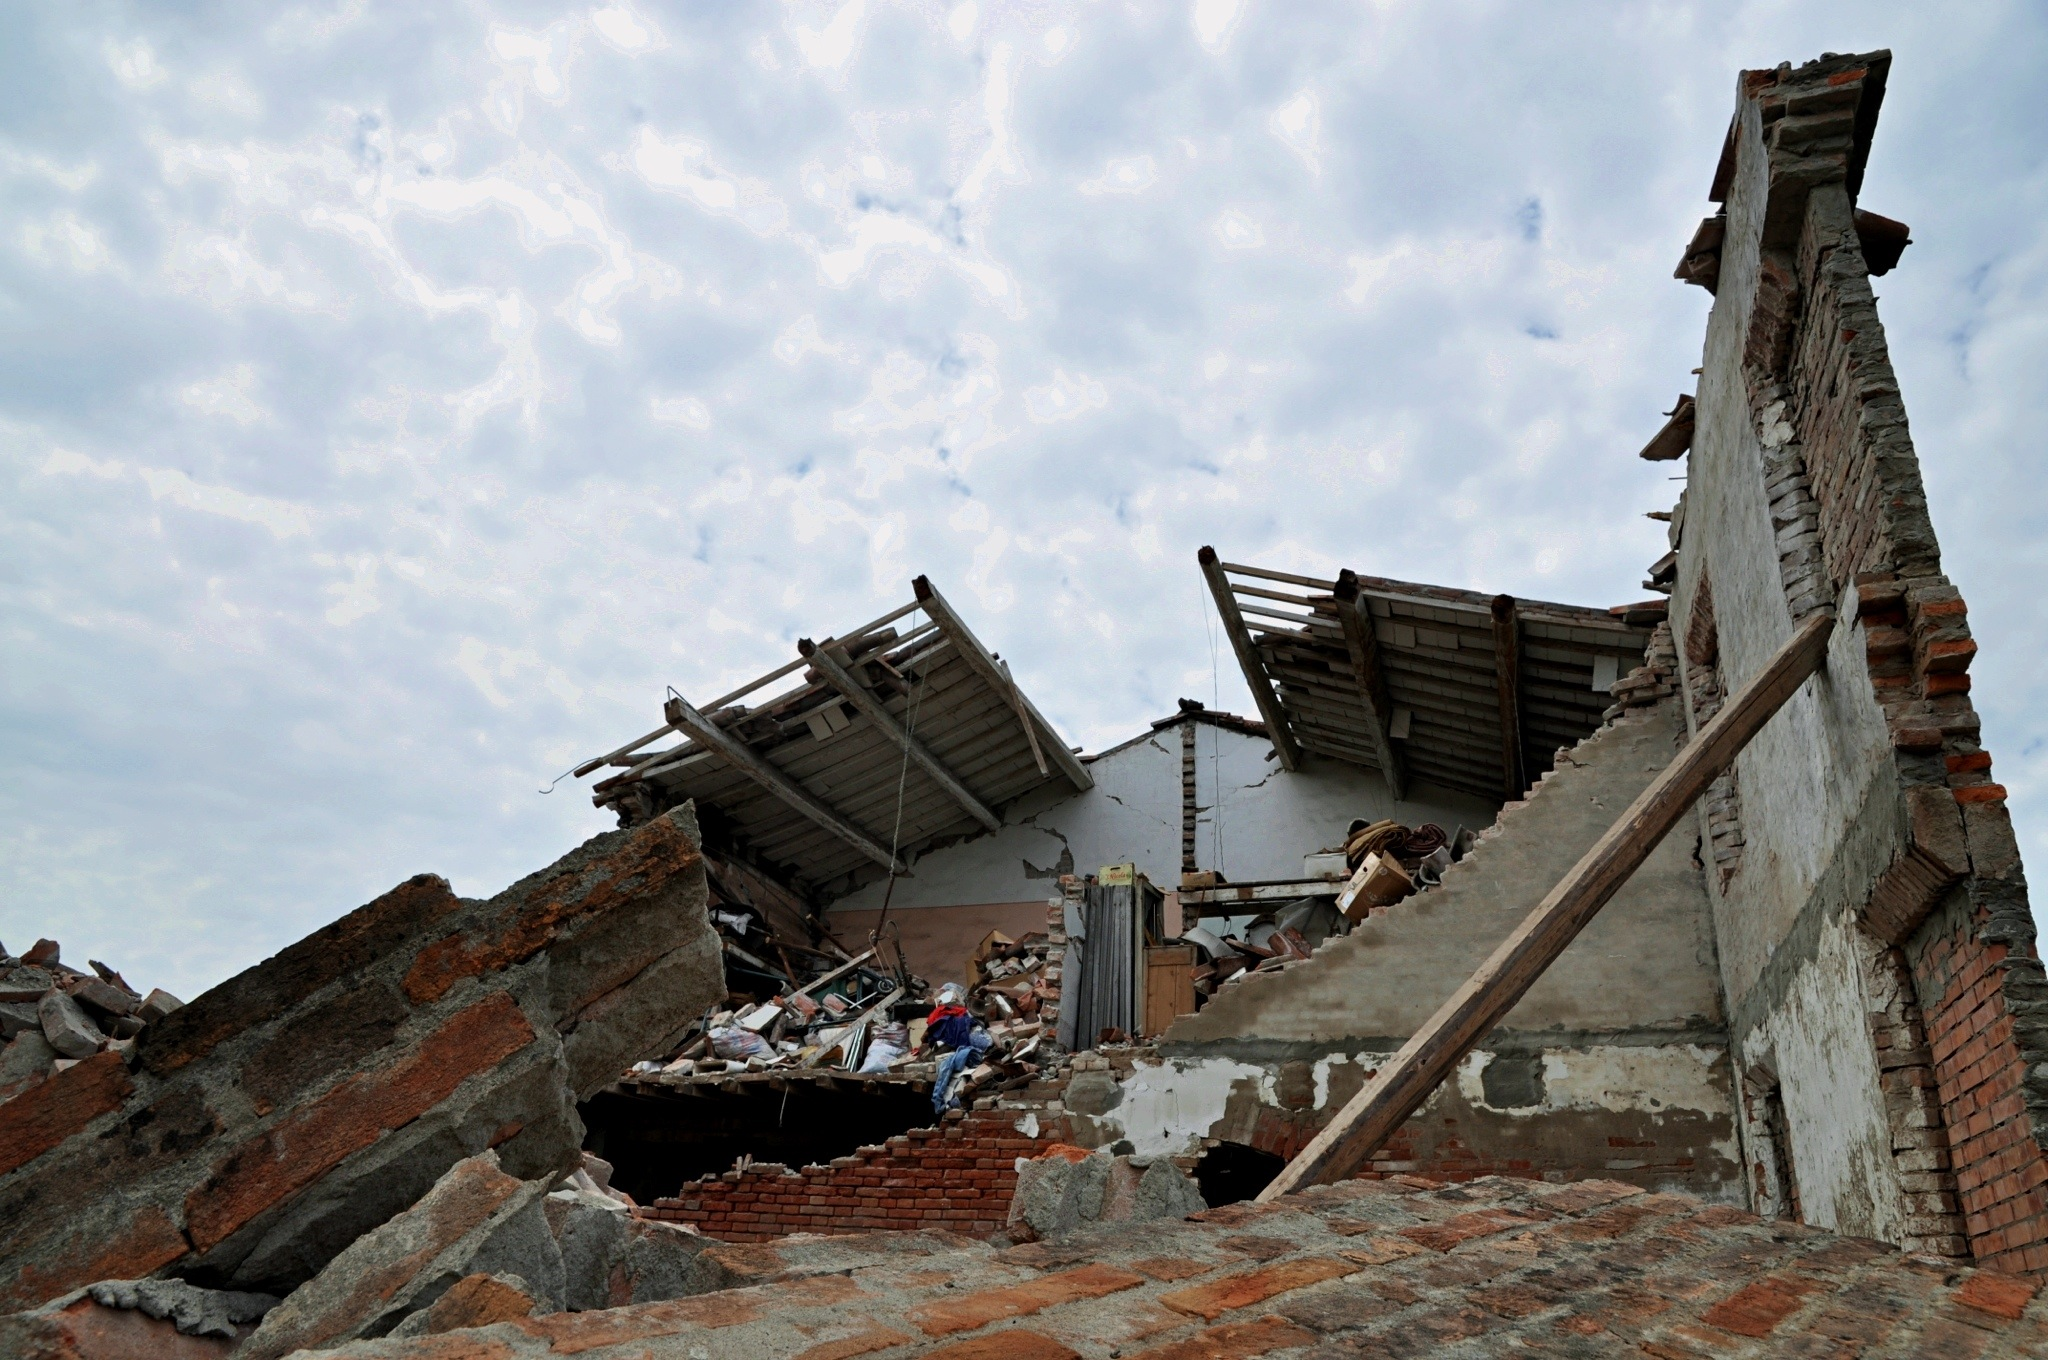 Essay on earthquake in india 2011 to 2012